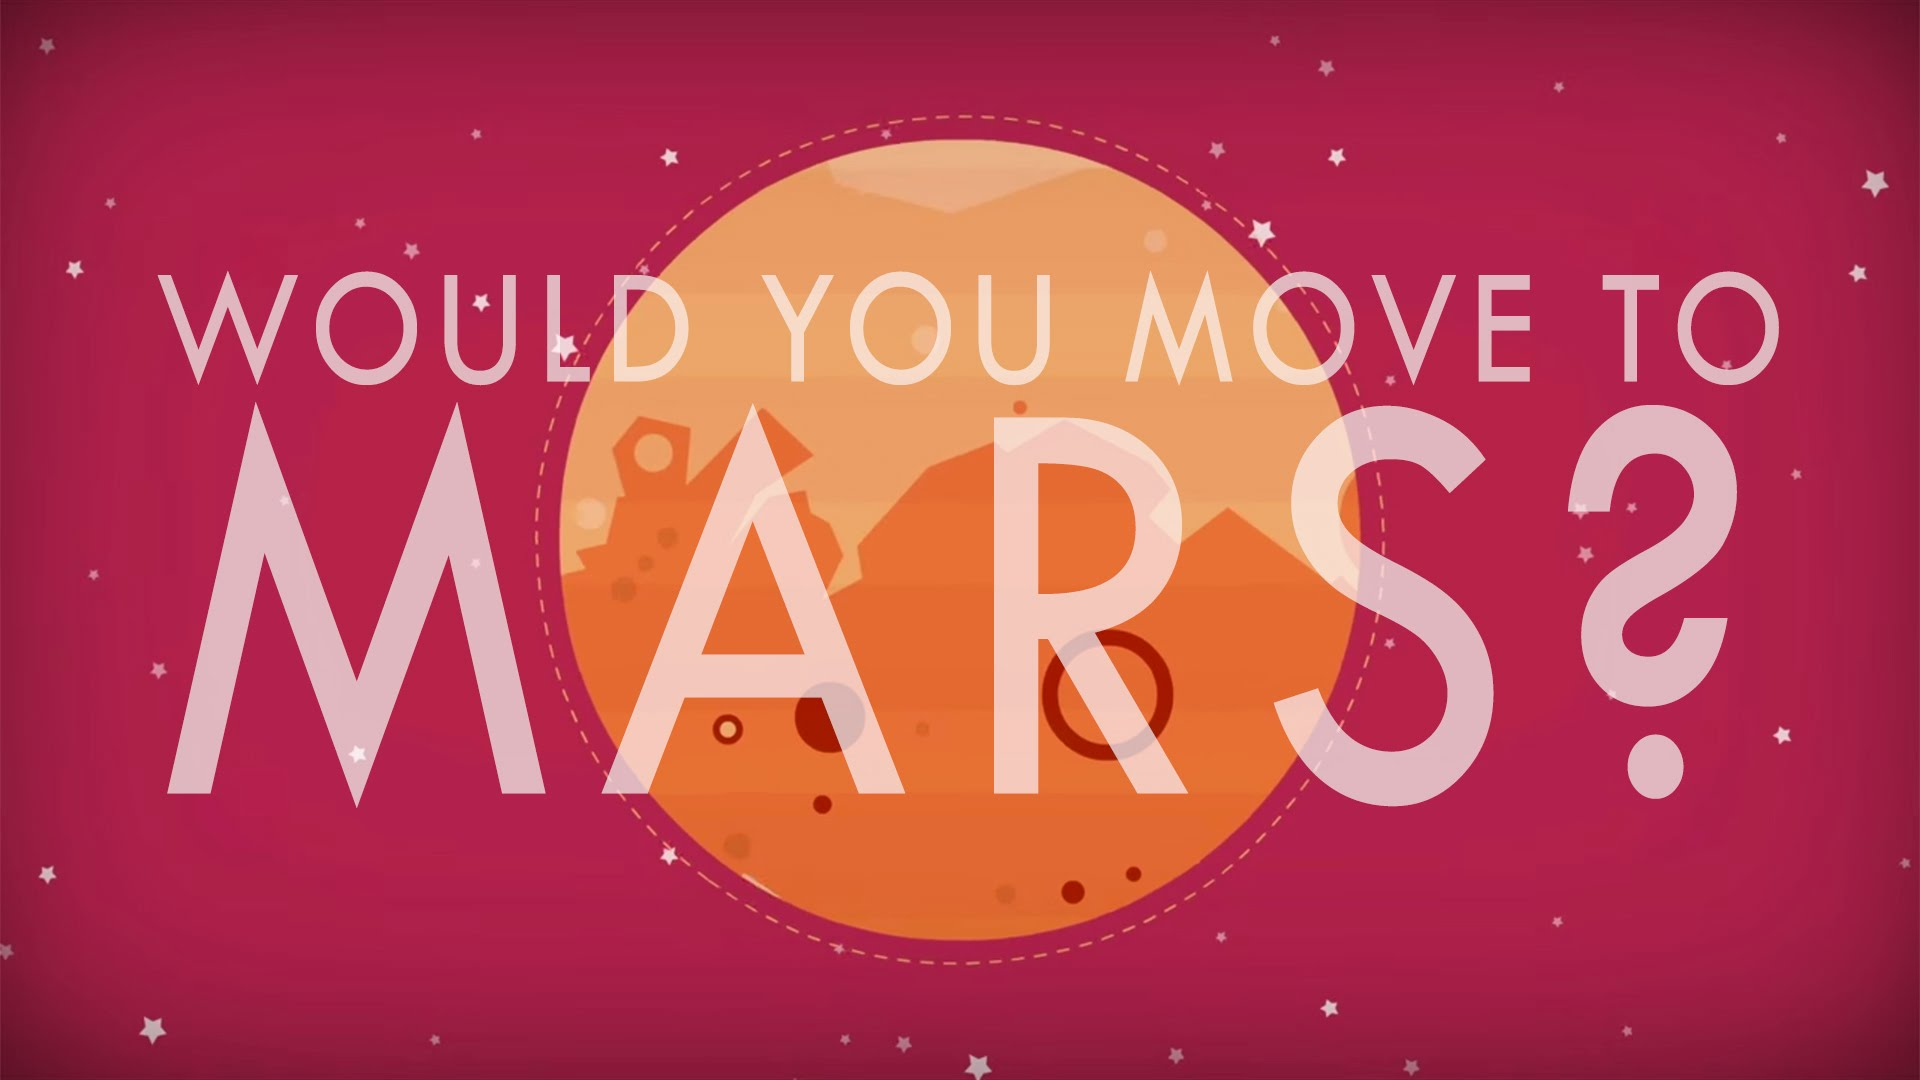 TED - Could we actually live on Mars? -